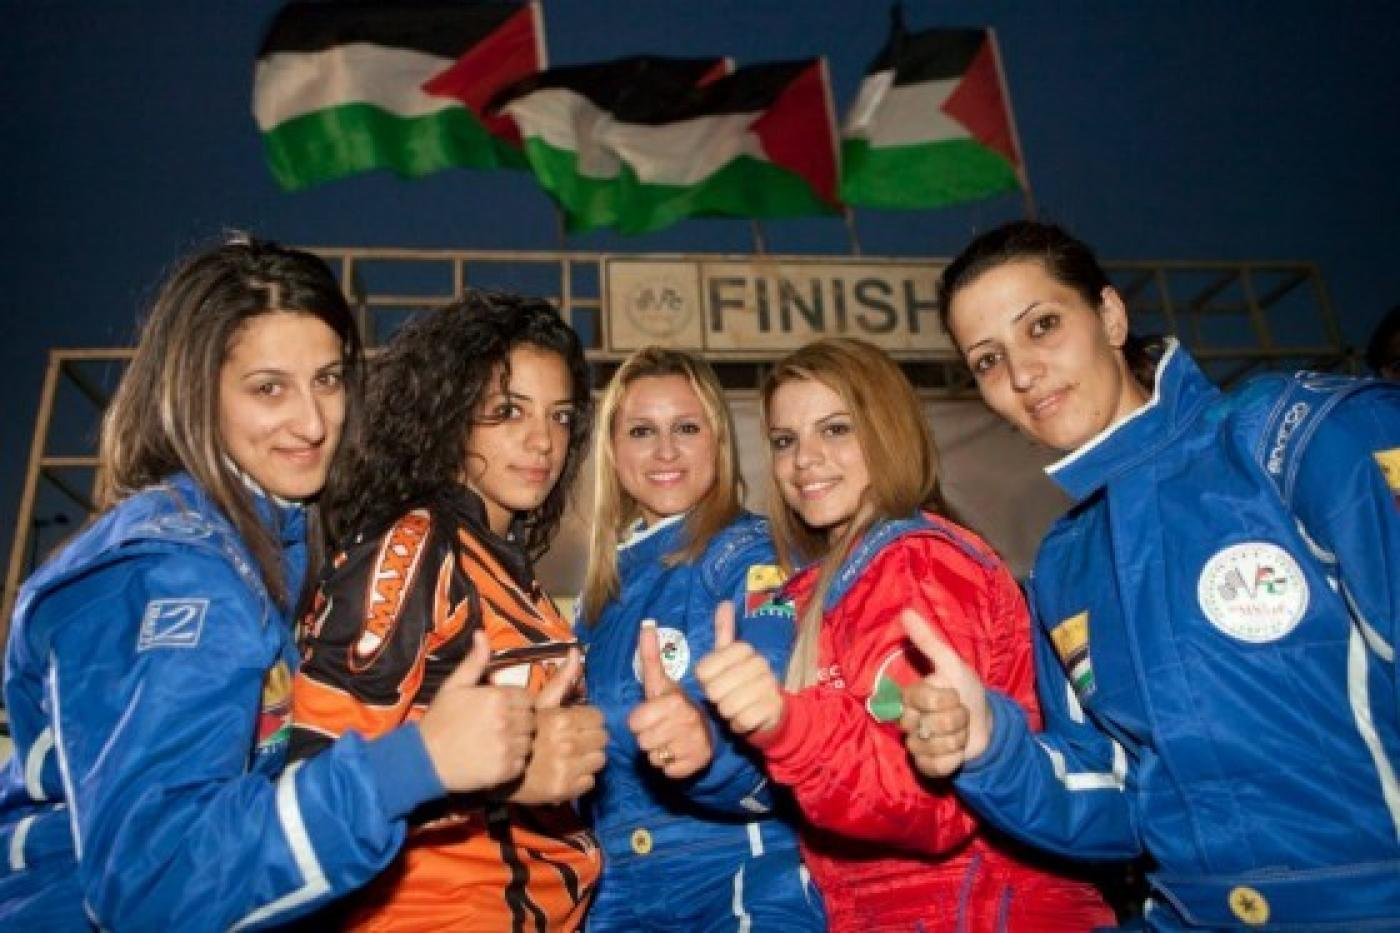 acb45408c Palestinian Speed Sisters take the wheel and race to break barriers ...